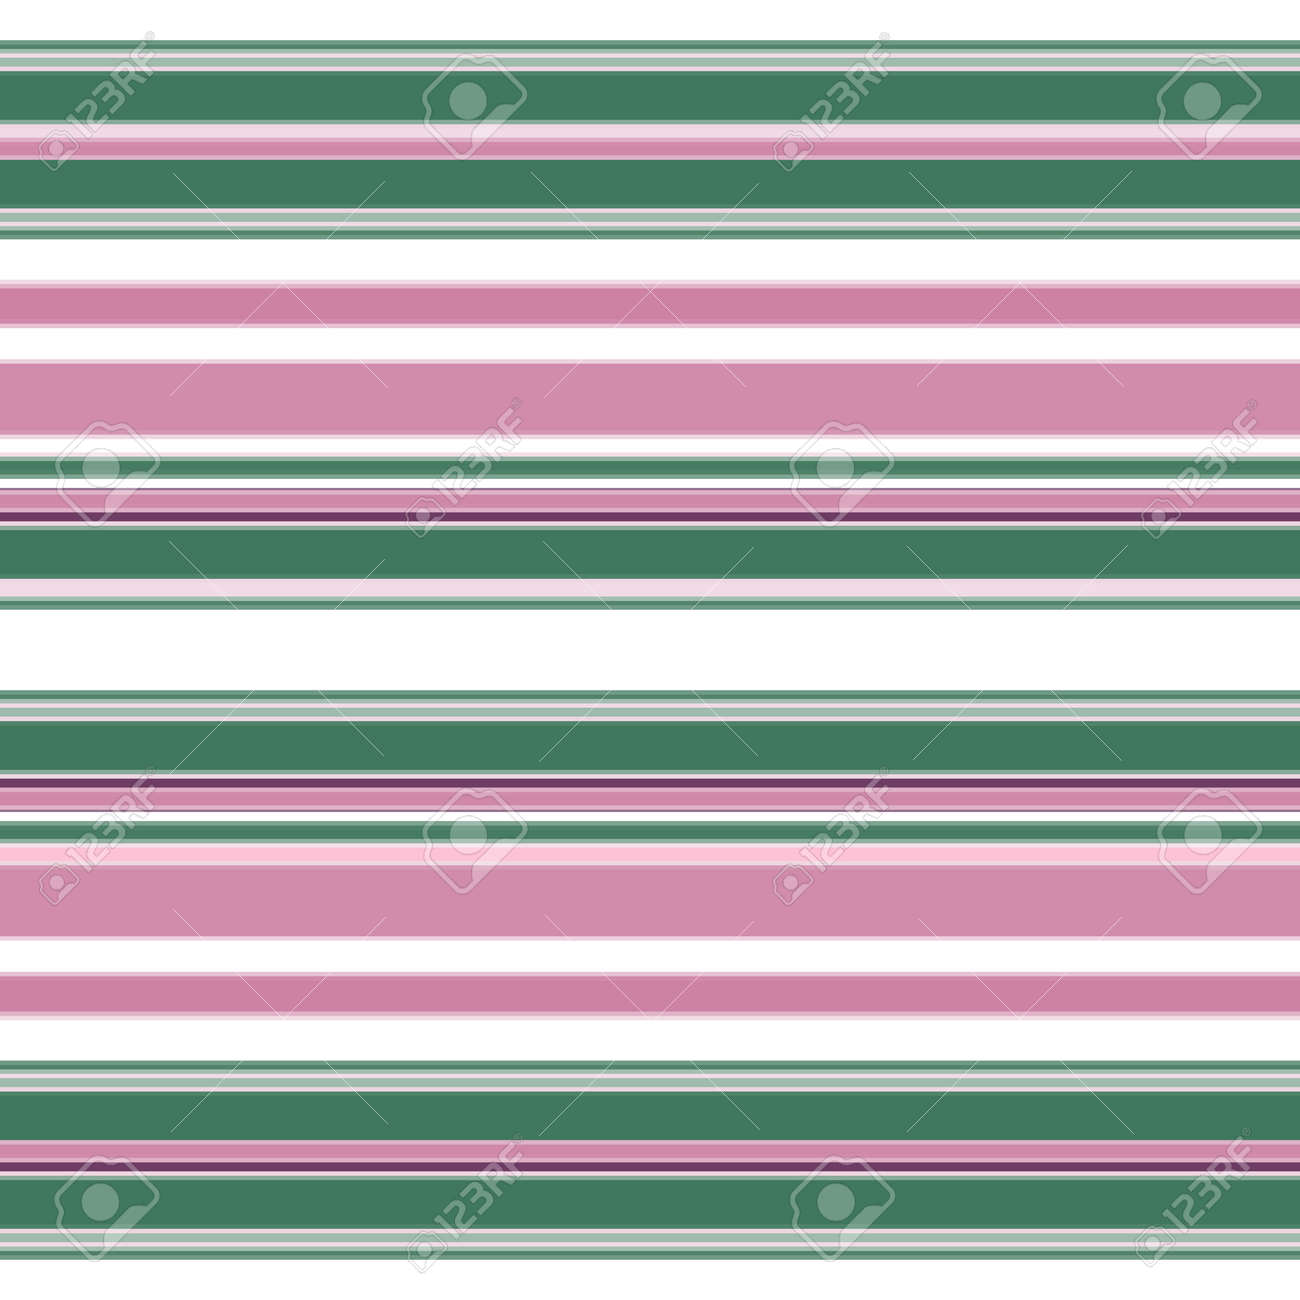 Simple striped seamless pattern. A horizontal strip of purple, green and white. Great for decorating fabrics, textiles, gift wrapping, printed matter, interiors, advertising. - 171746566